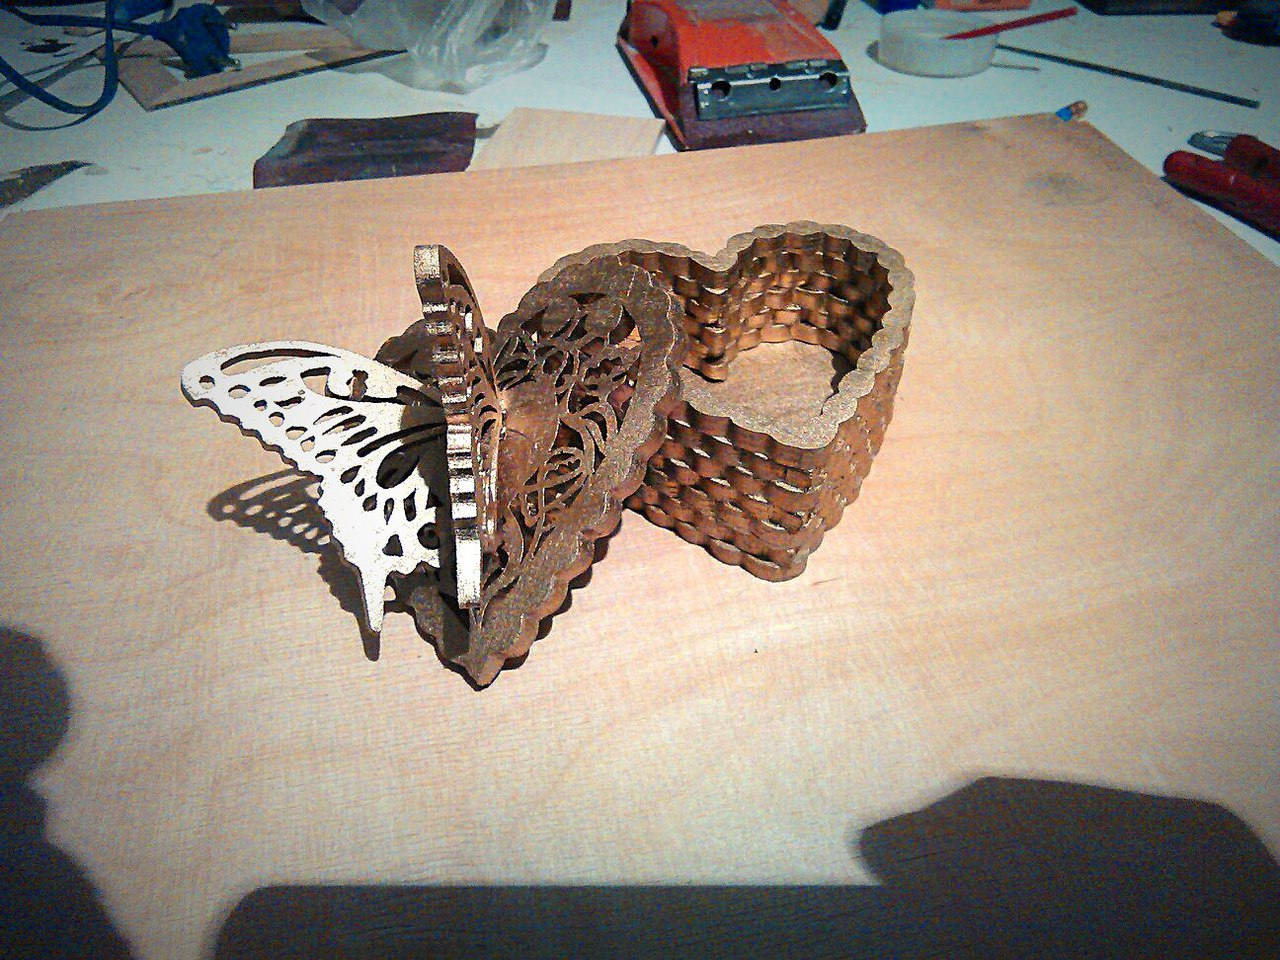 Butterfly Heart Box Free DXF File